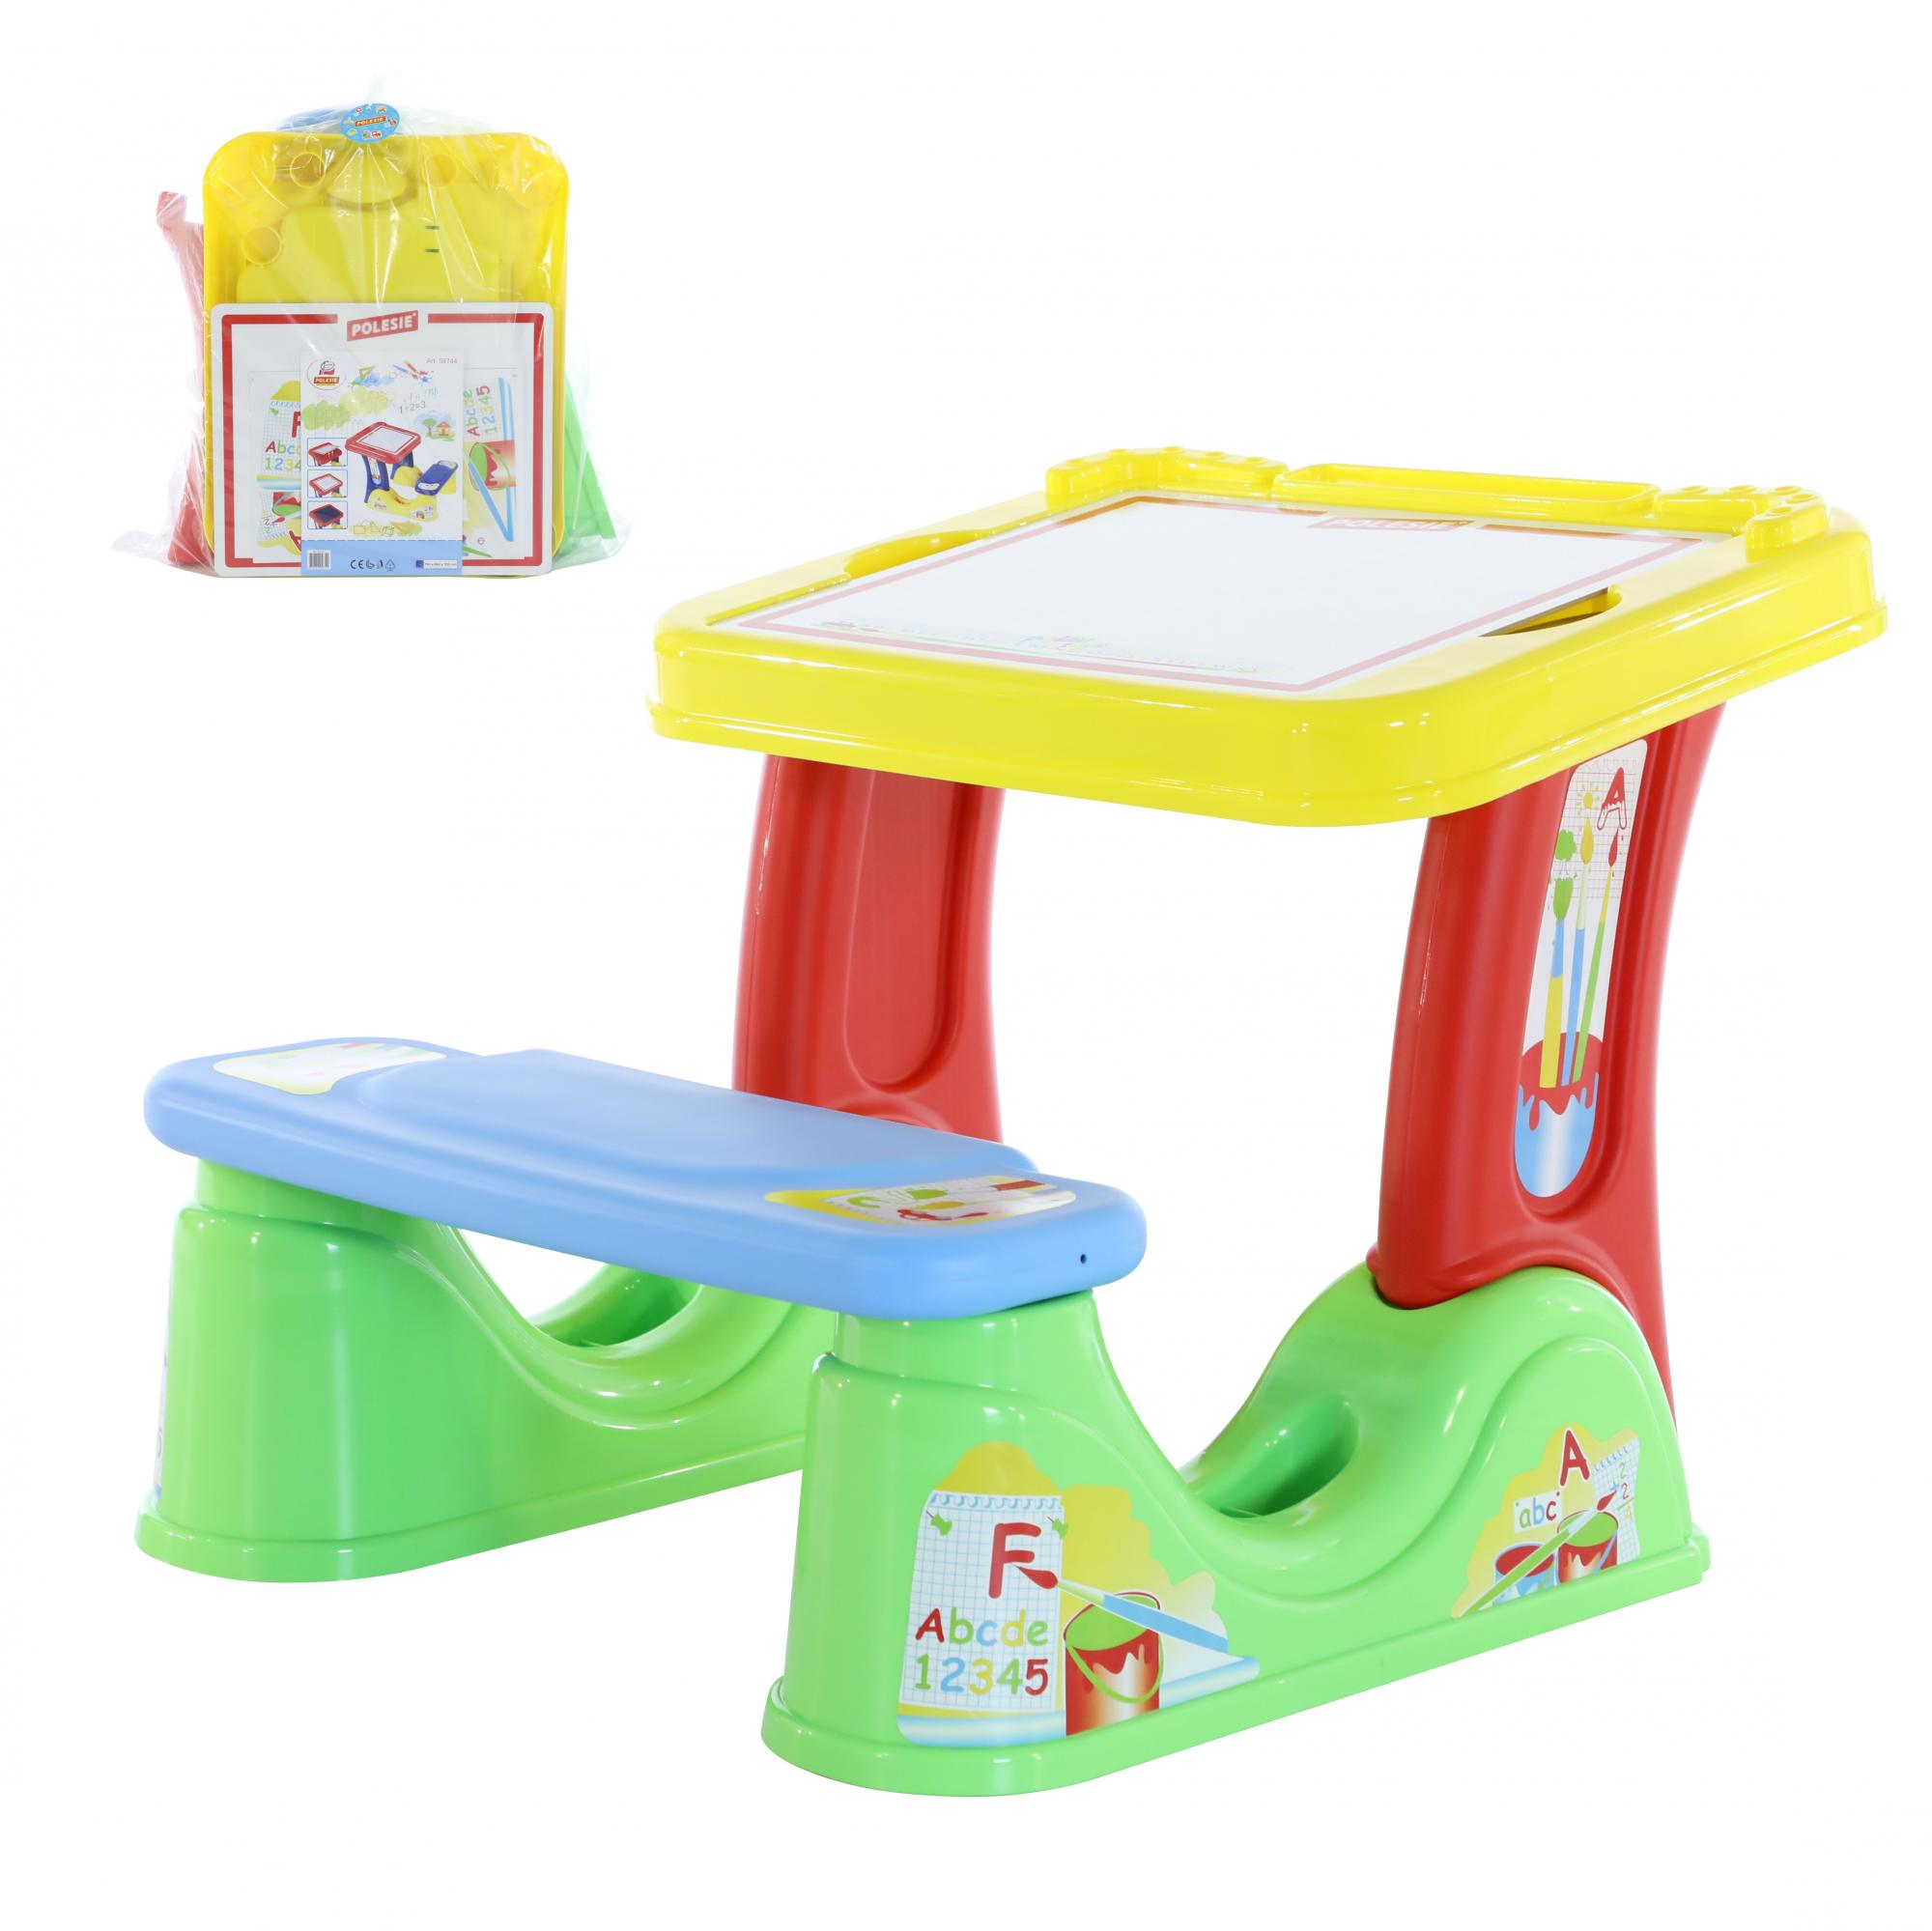 School Sets Palau Toys  Set Preschooler (package) For Kids Games For Boys And Girls For Children Toys Children's Office For School